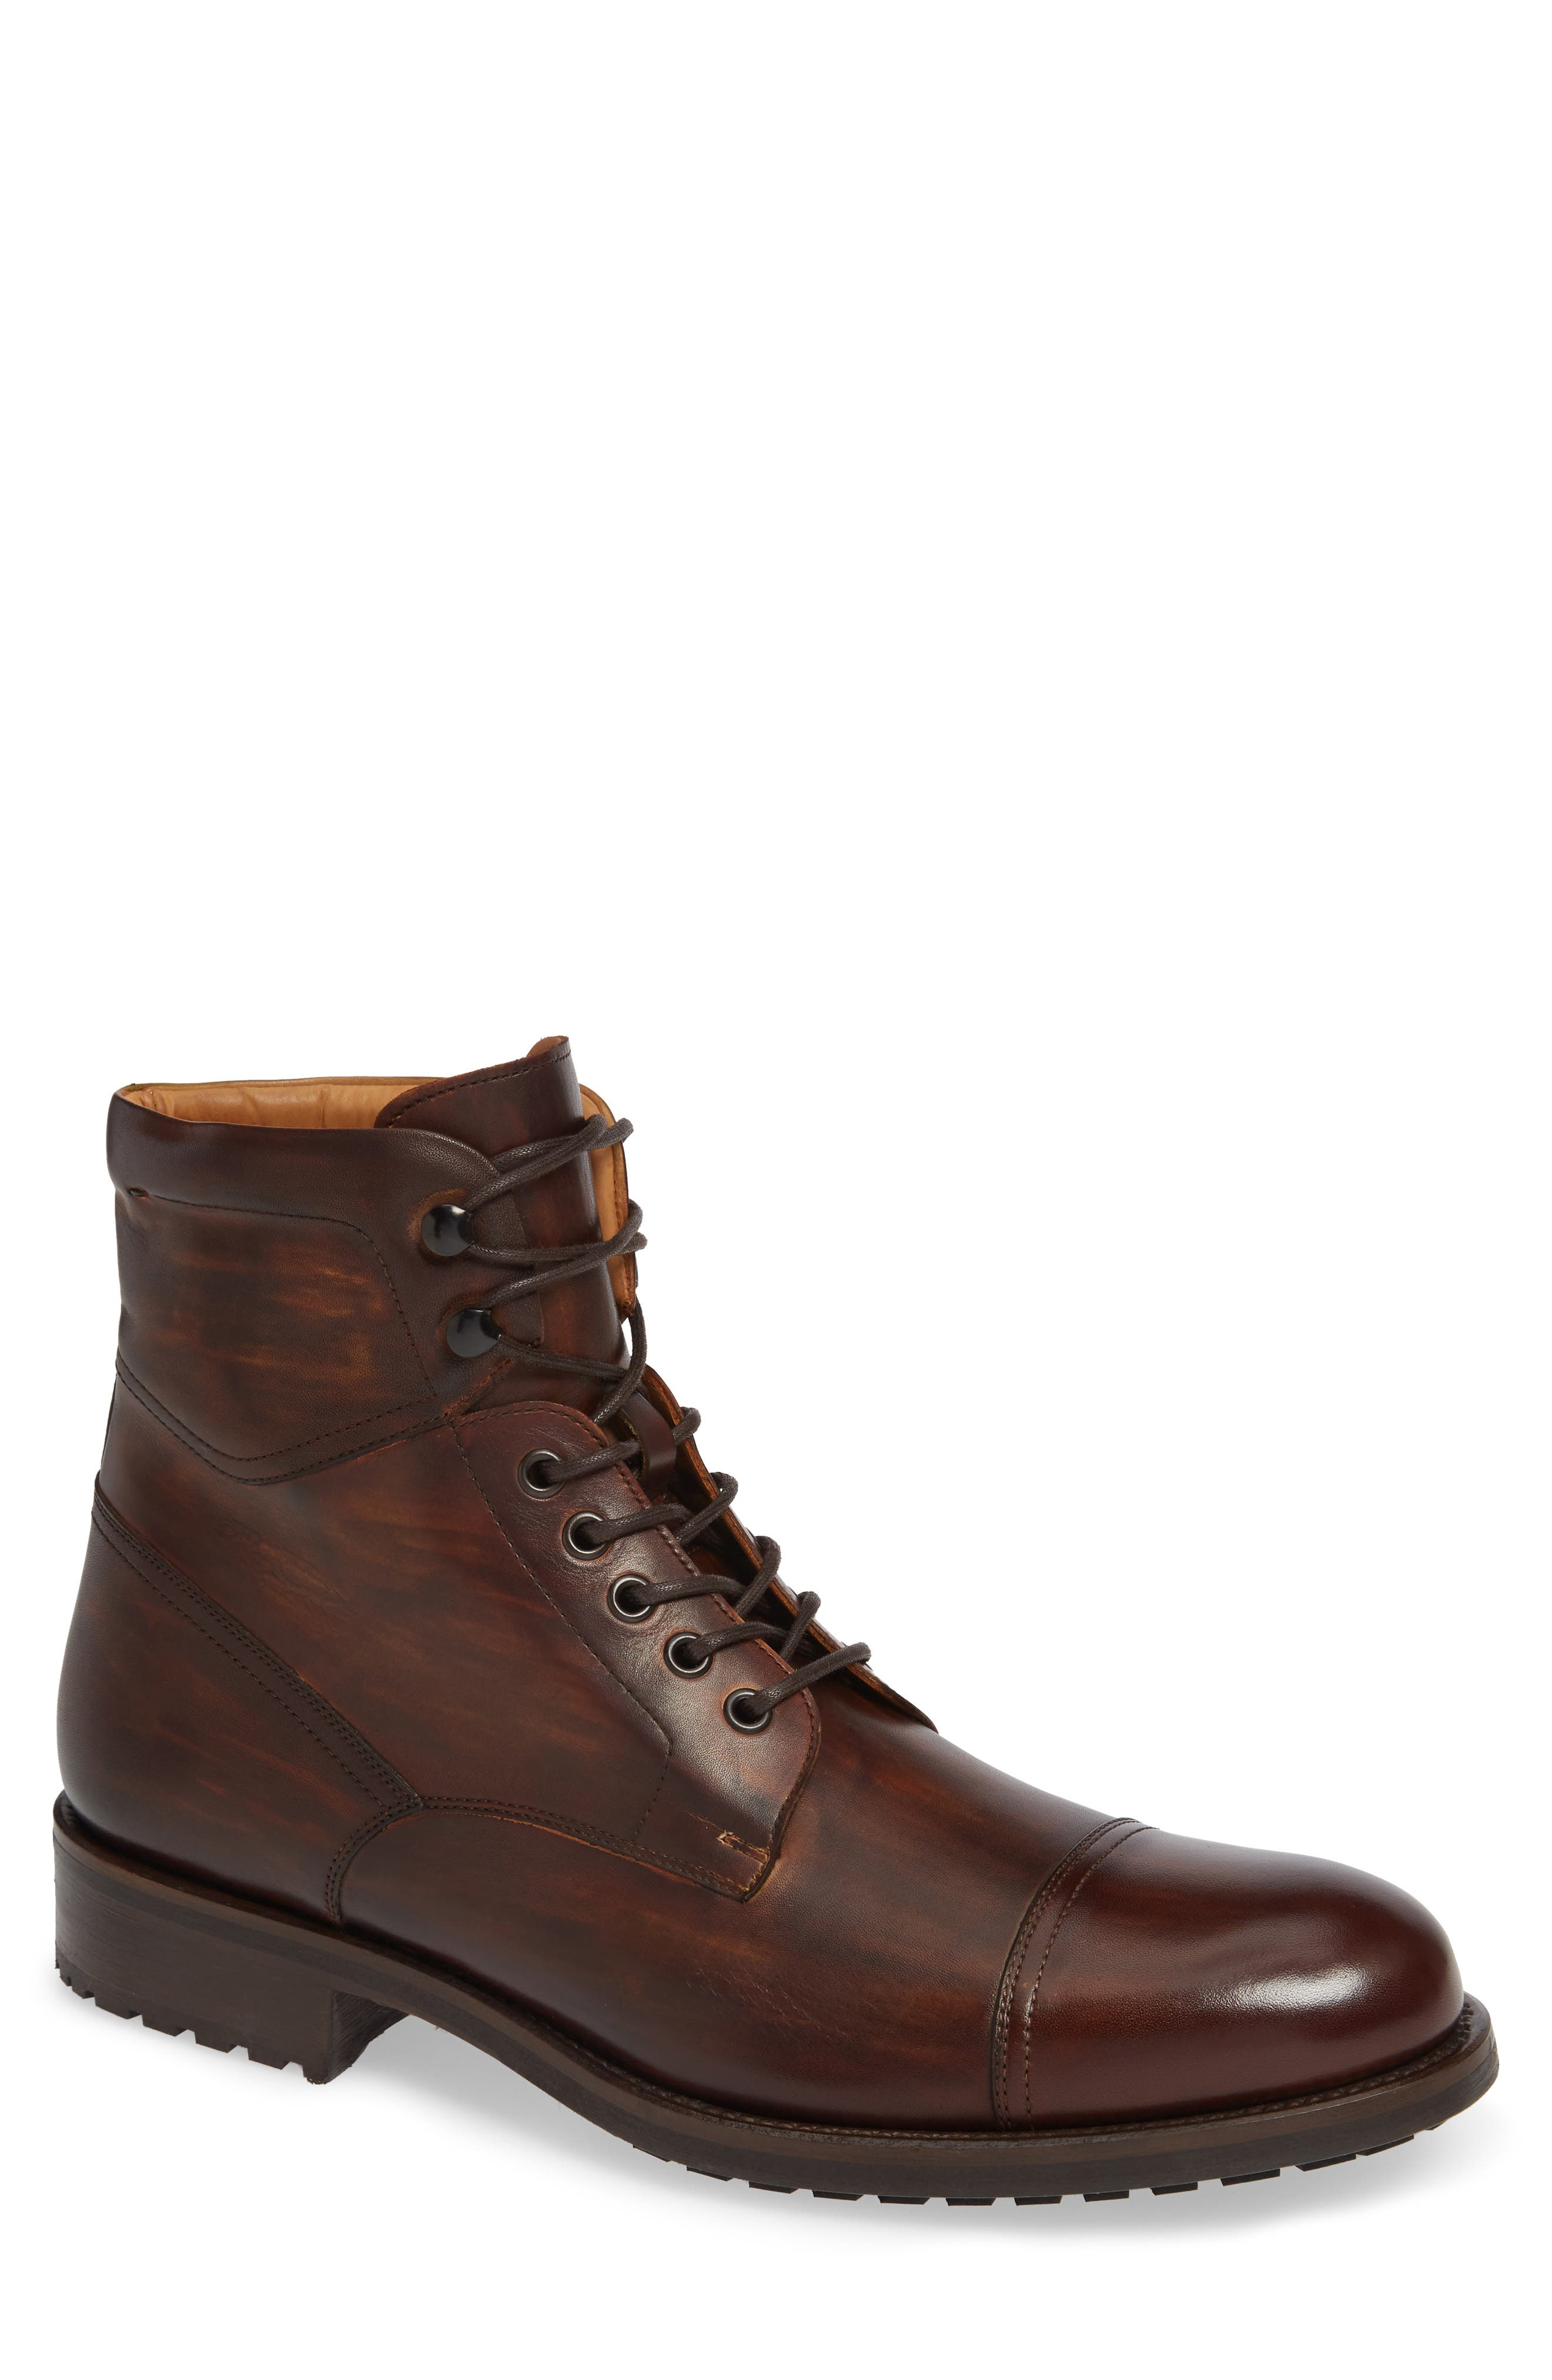 MAGNANNI Peyton Cap Toe Boot, Main, color, TOBACCO LEATHER